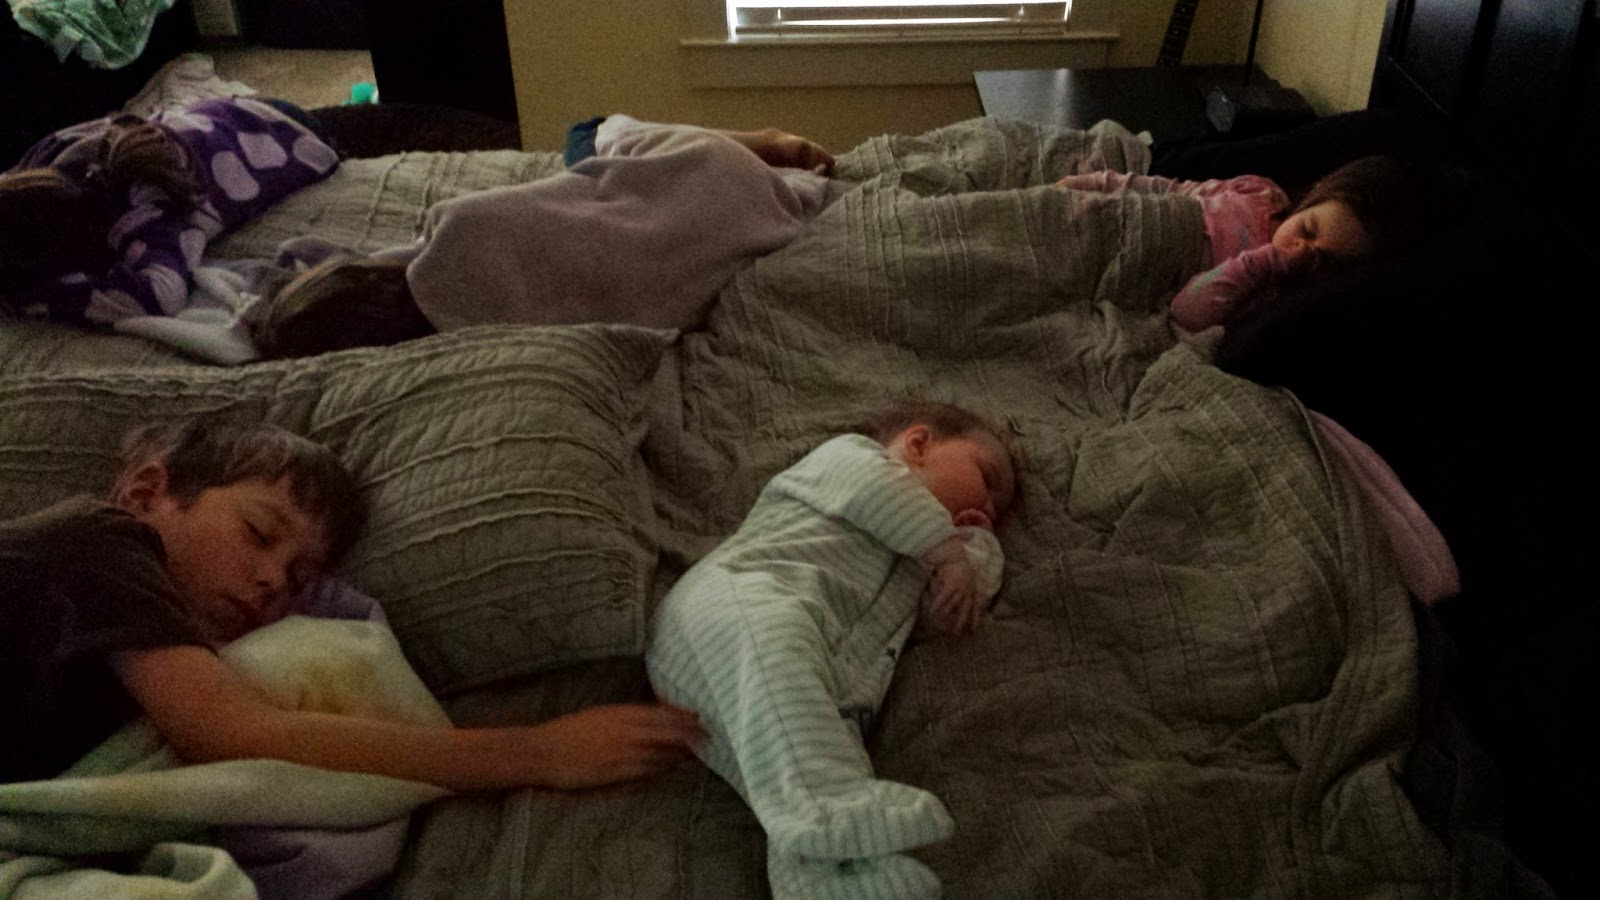 At one point, my bed was full of sick, feverish, weak little people. Poor kids.